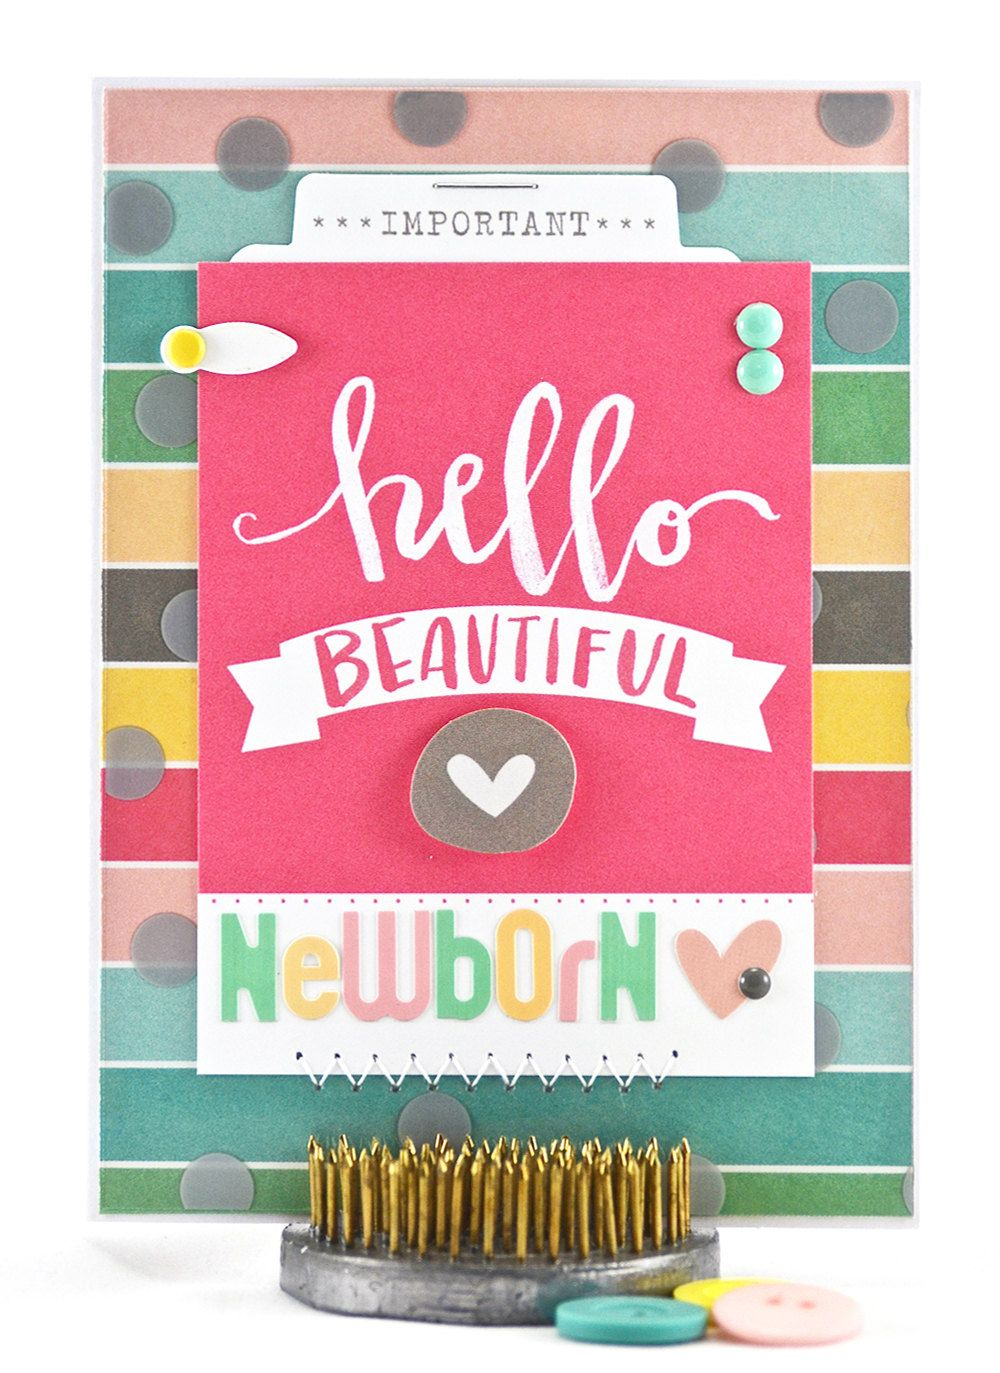 Newborn baby card wishes for new baby new baby congrats card new baby card card for baby wishes for baby girl card hello beautiful kristyandbryce Images